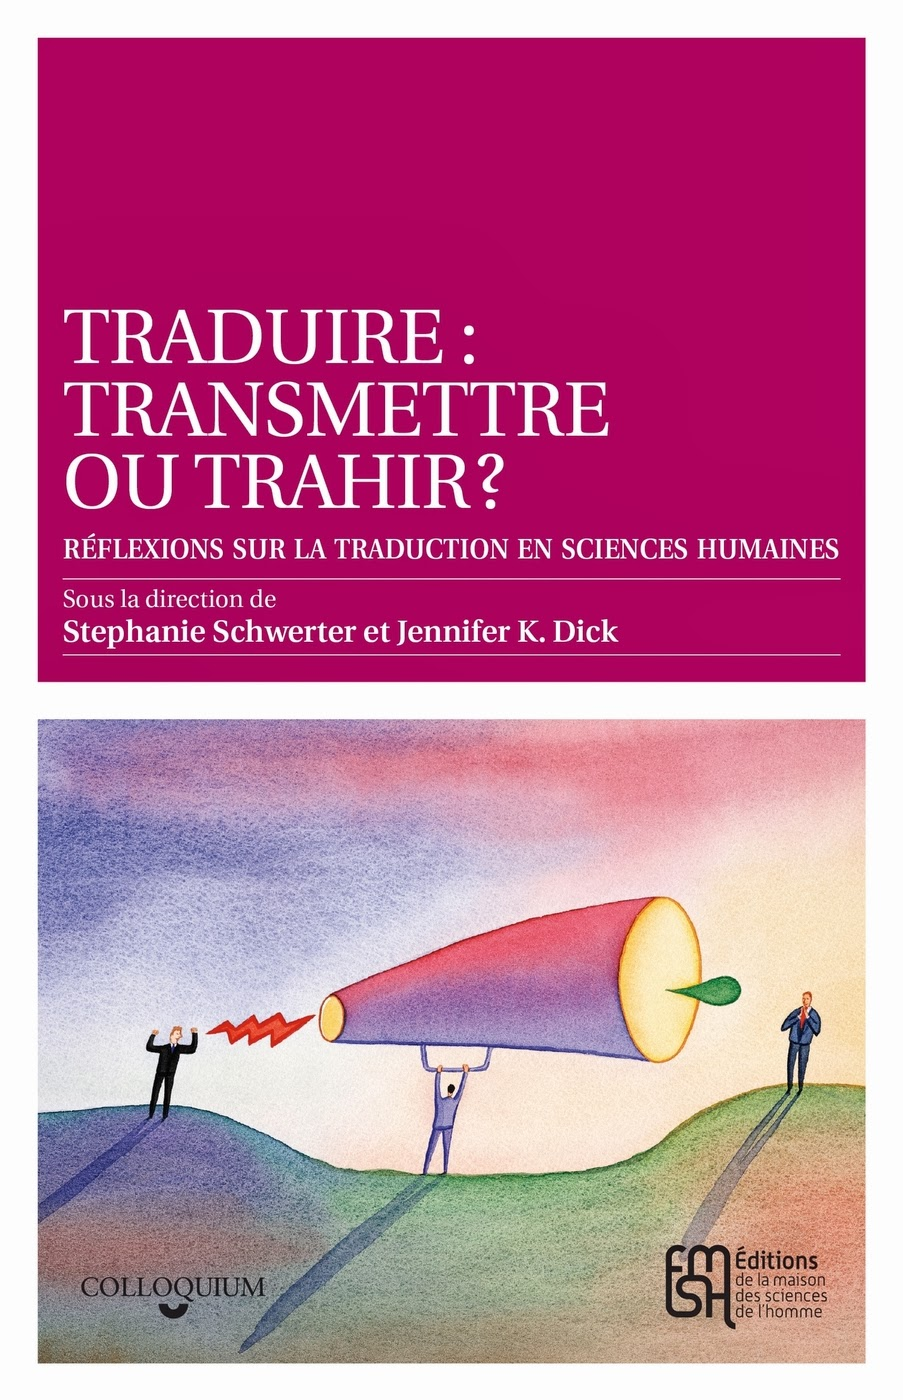 NEW! Jennifer K Dick and Stephanie Schwerter's Traduire: transmettre ou trahir? (MSH, 2013)